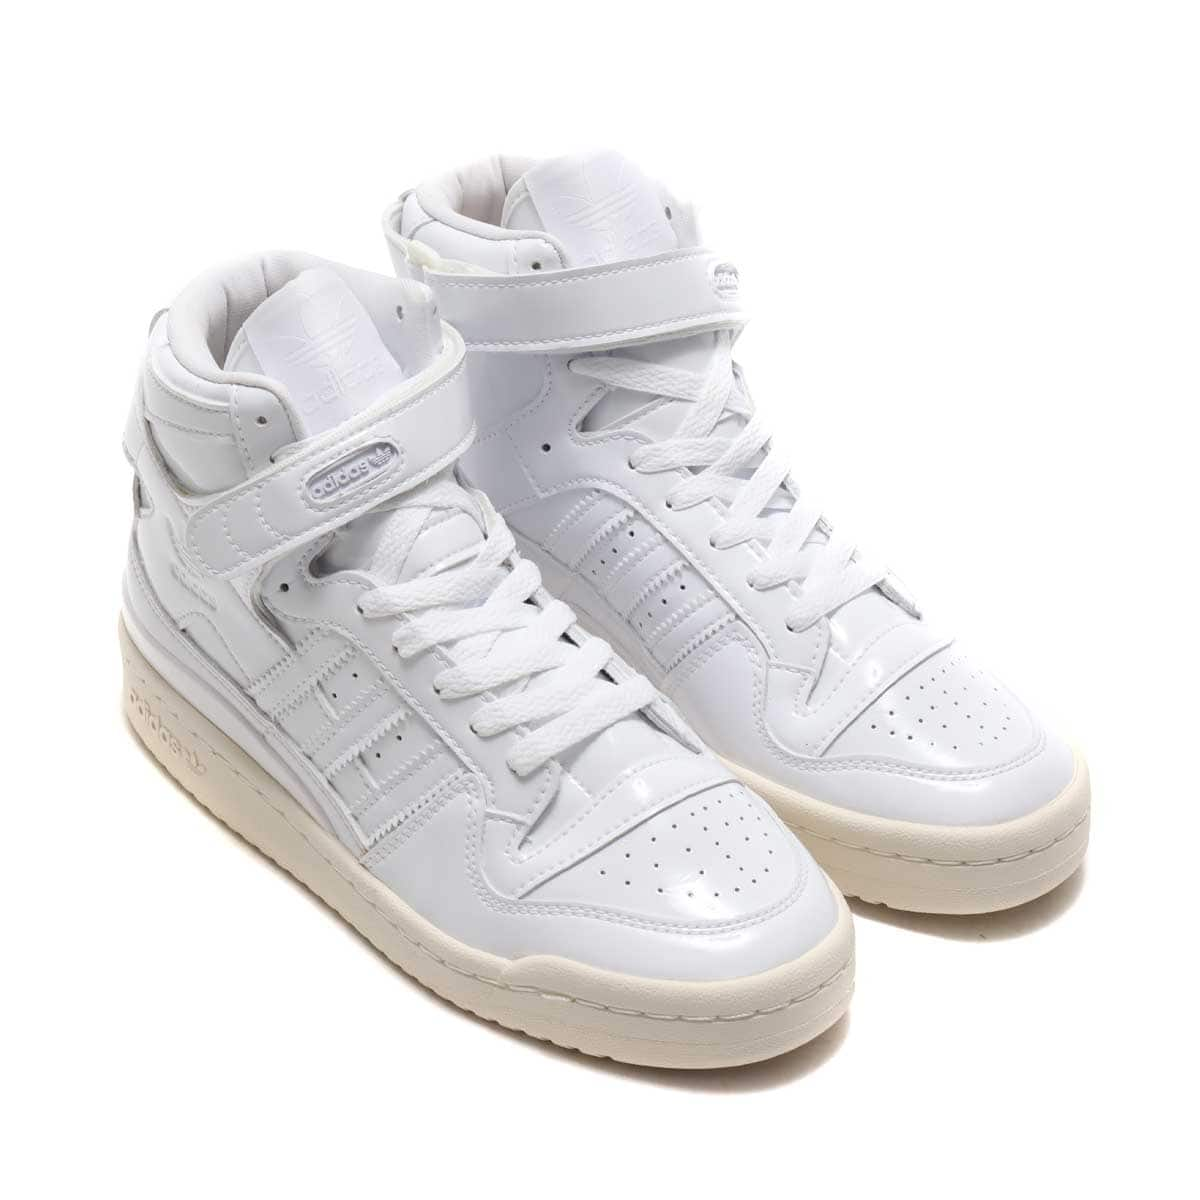 adidas FORUM 84 HIGH W FOOTWEAR WHITE/OFF WHITE /CORE BLACK 21SS-S_photo_large